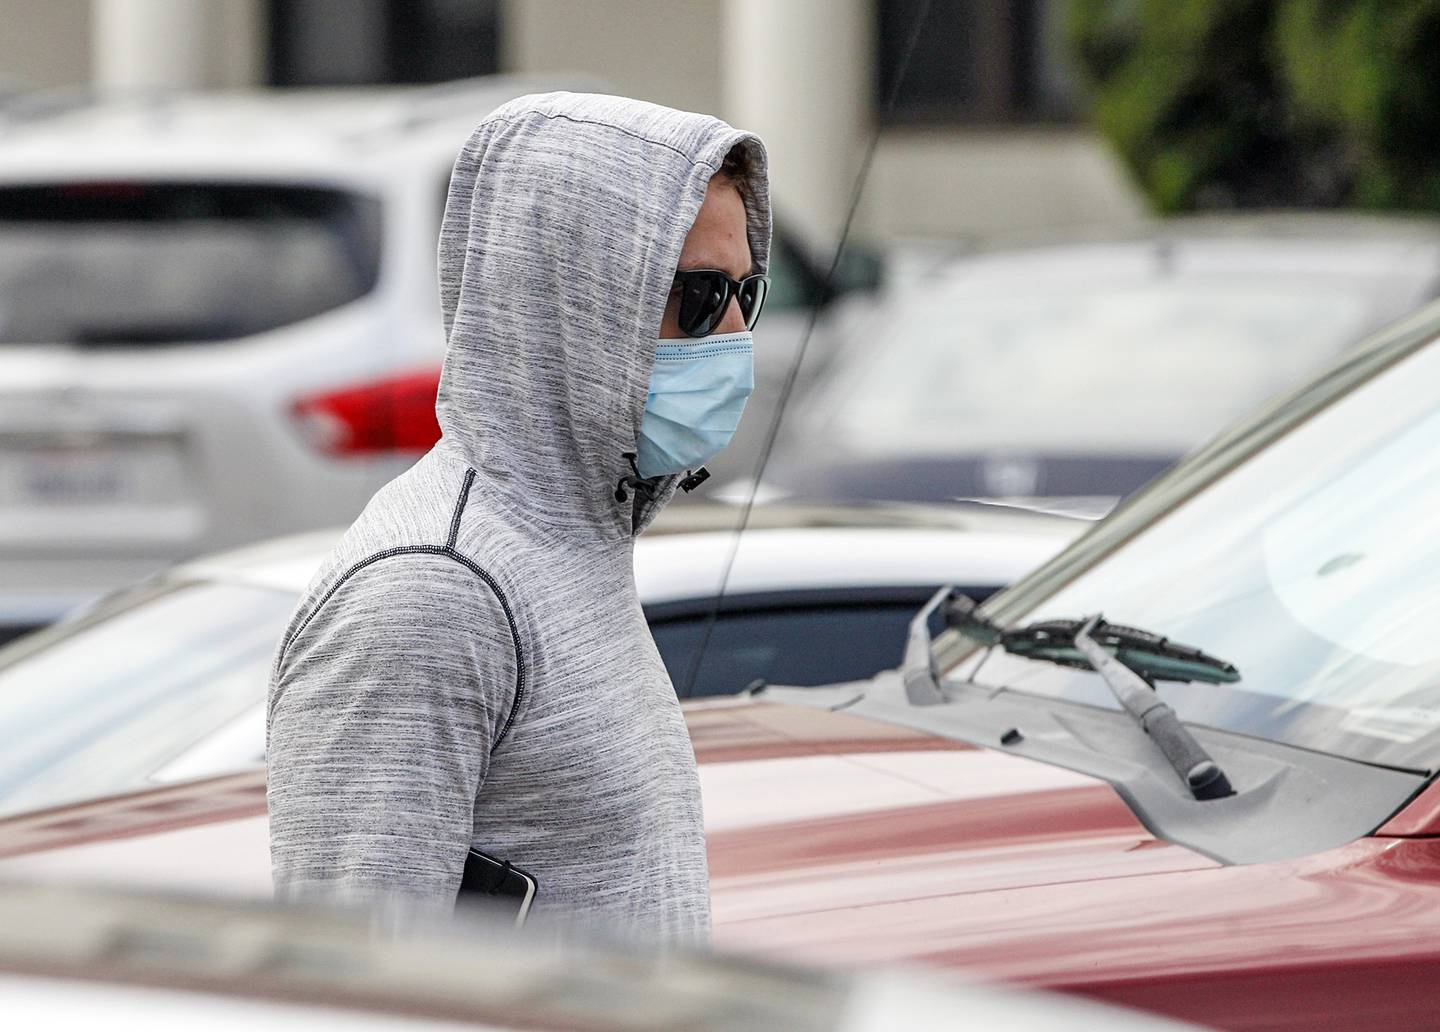 Petty Officer First Class Adel Enayat leaves the building after appearing for a hearing at Naval Base San Diego, Friday, Aug. 21, 2020, in San Diego.